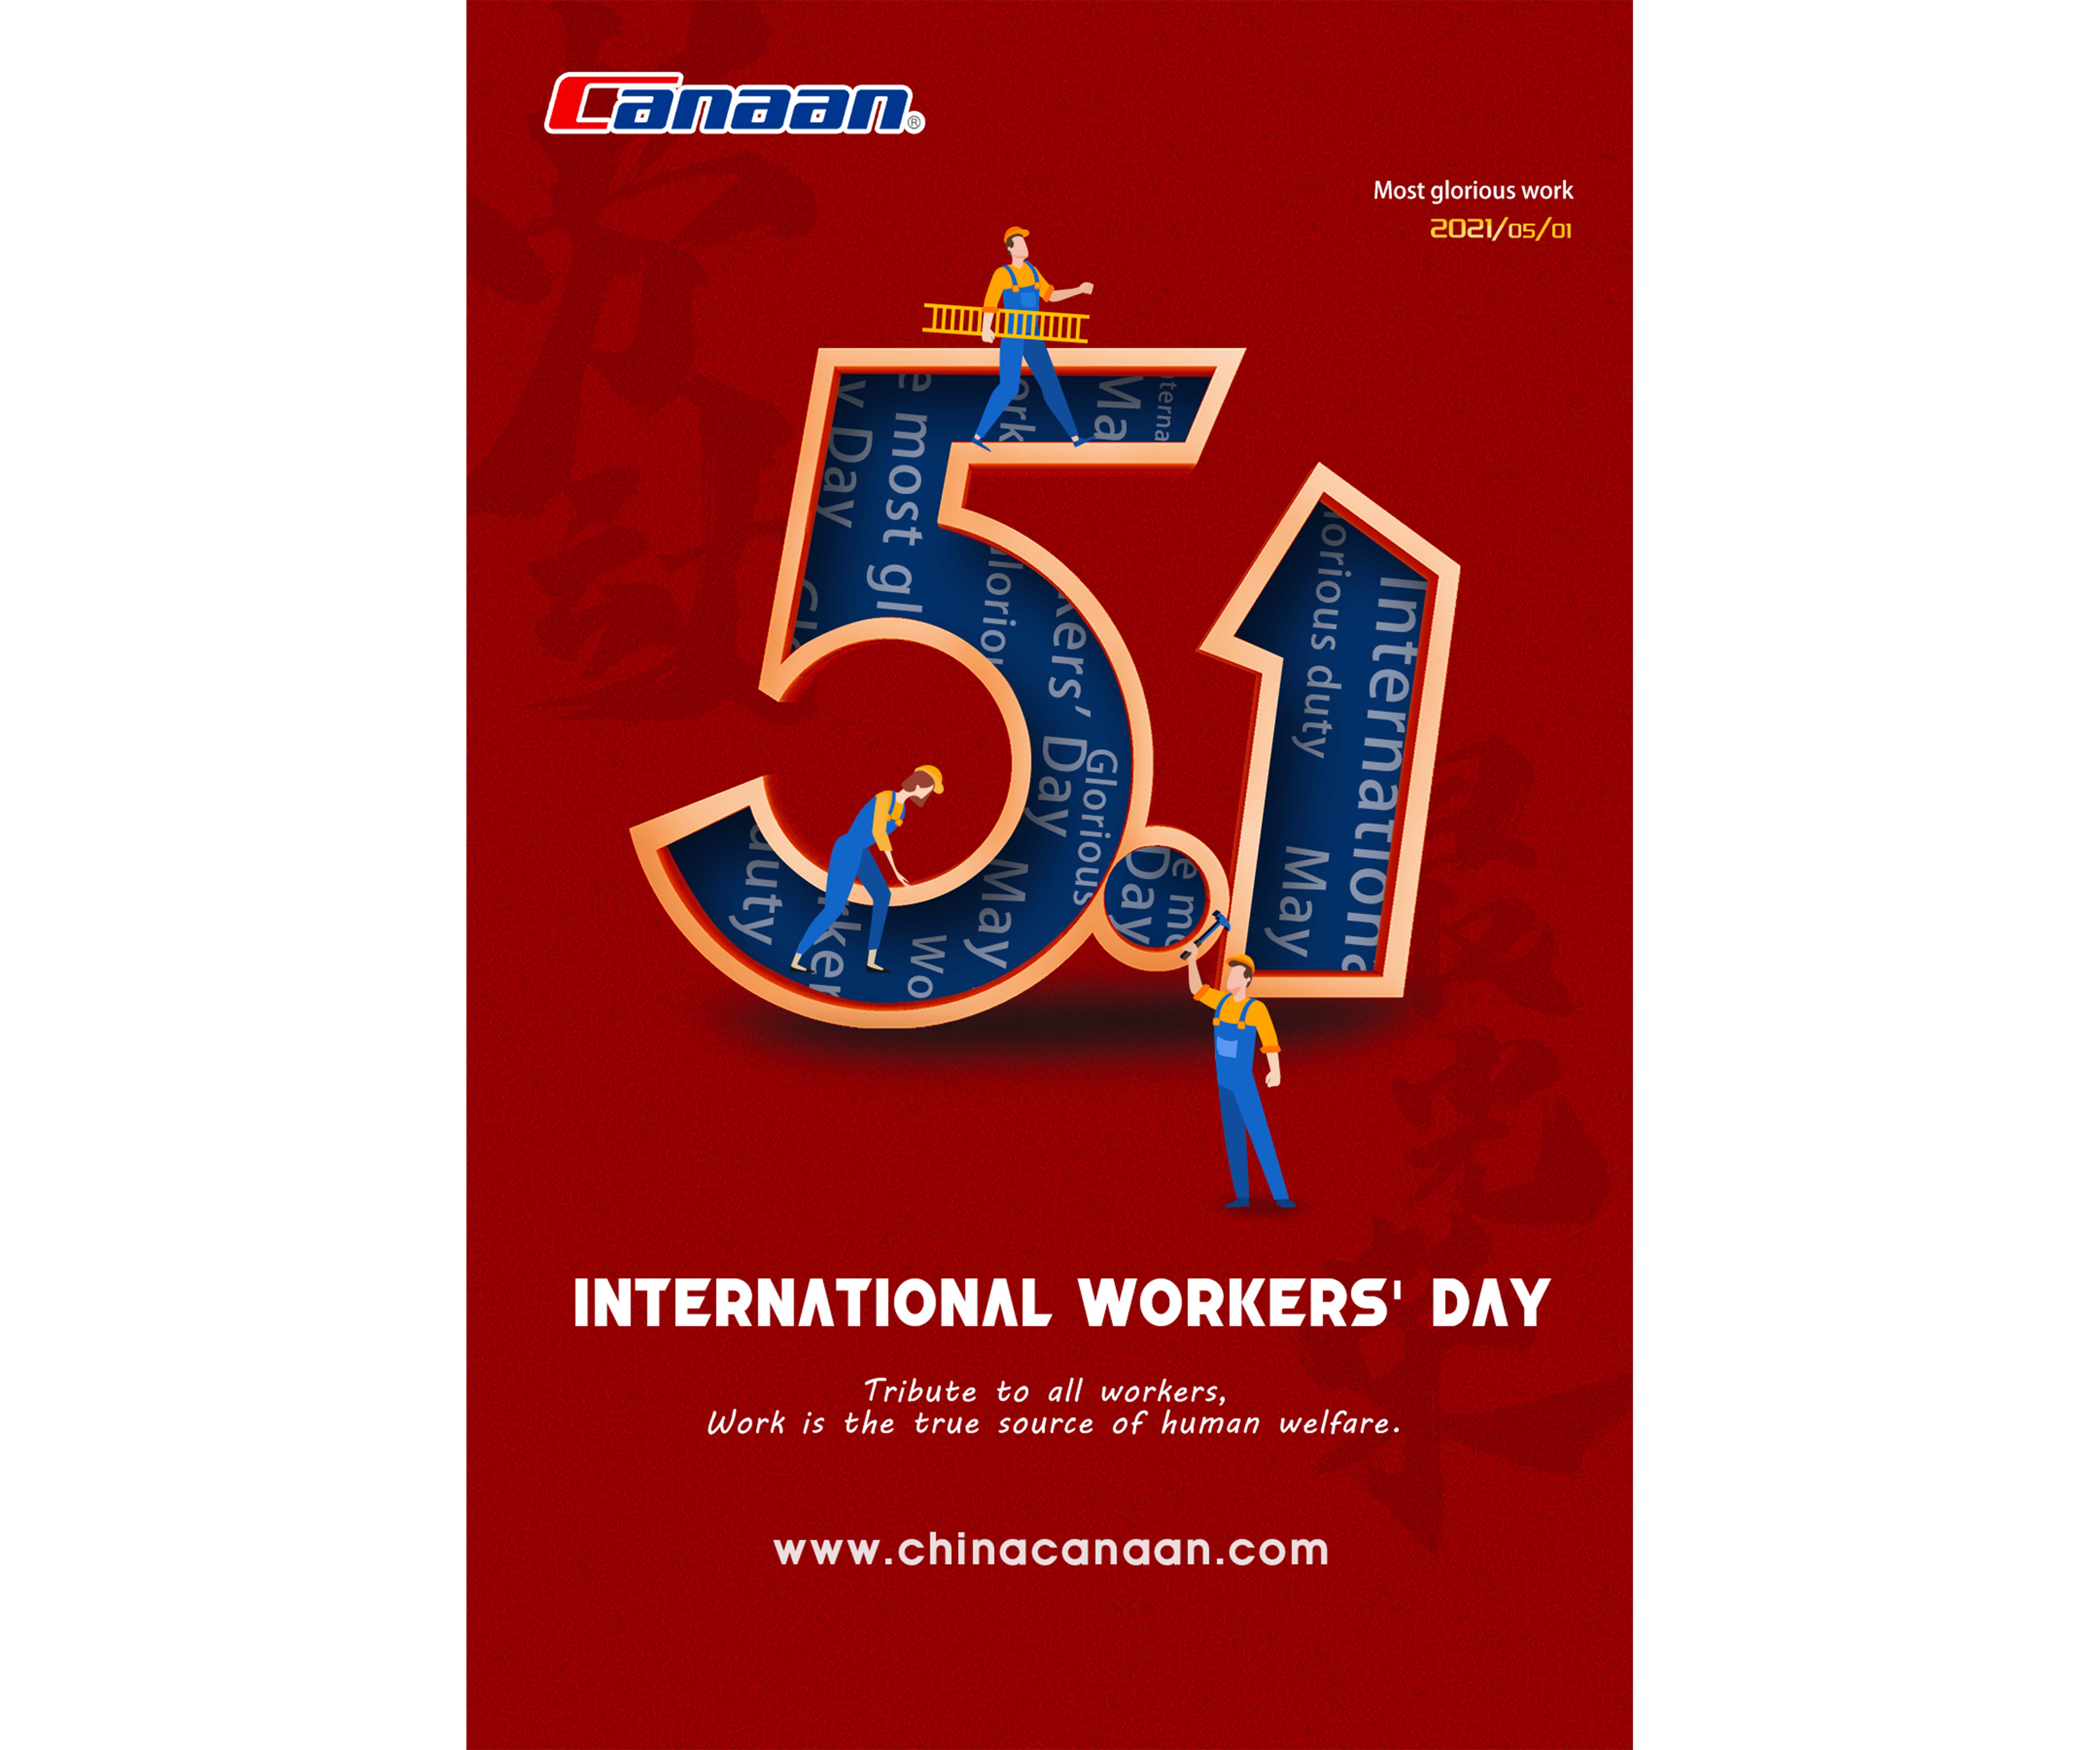 Happy International Worker's Day!